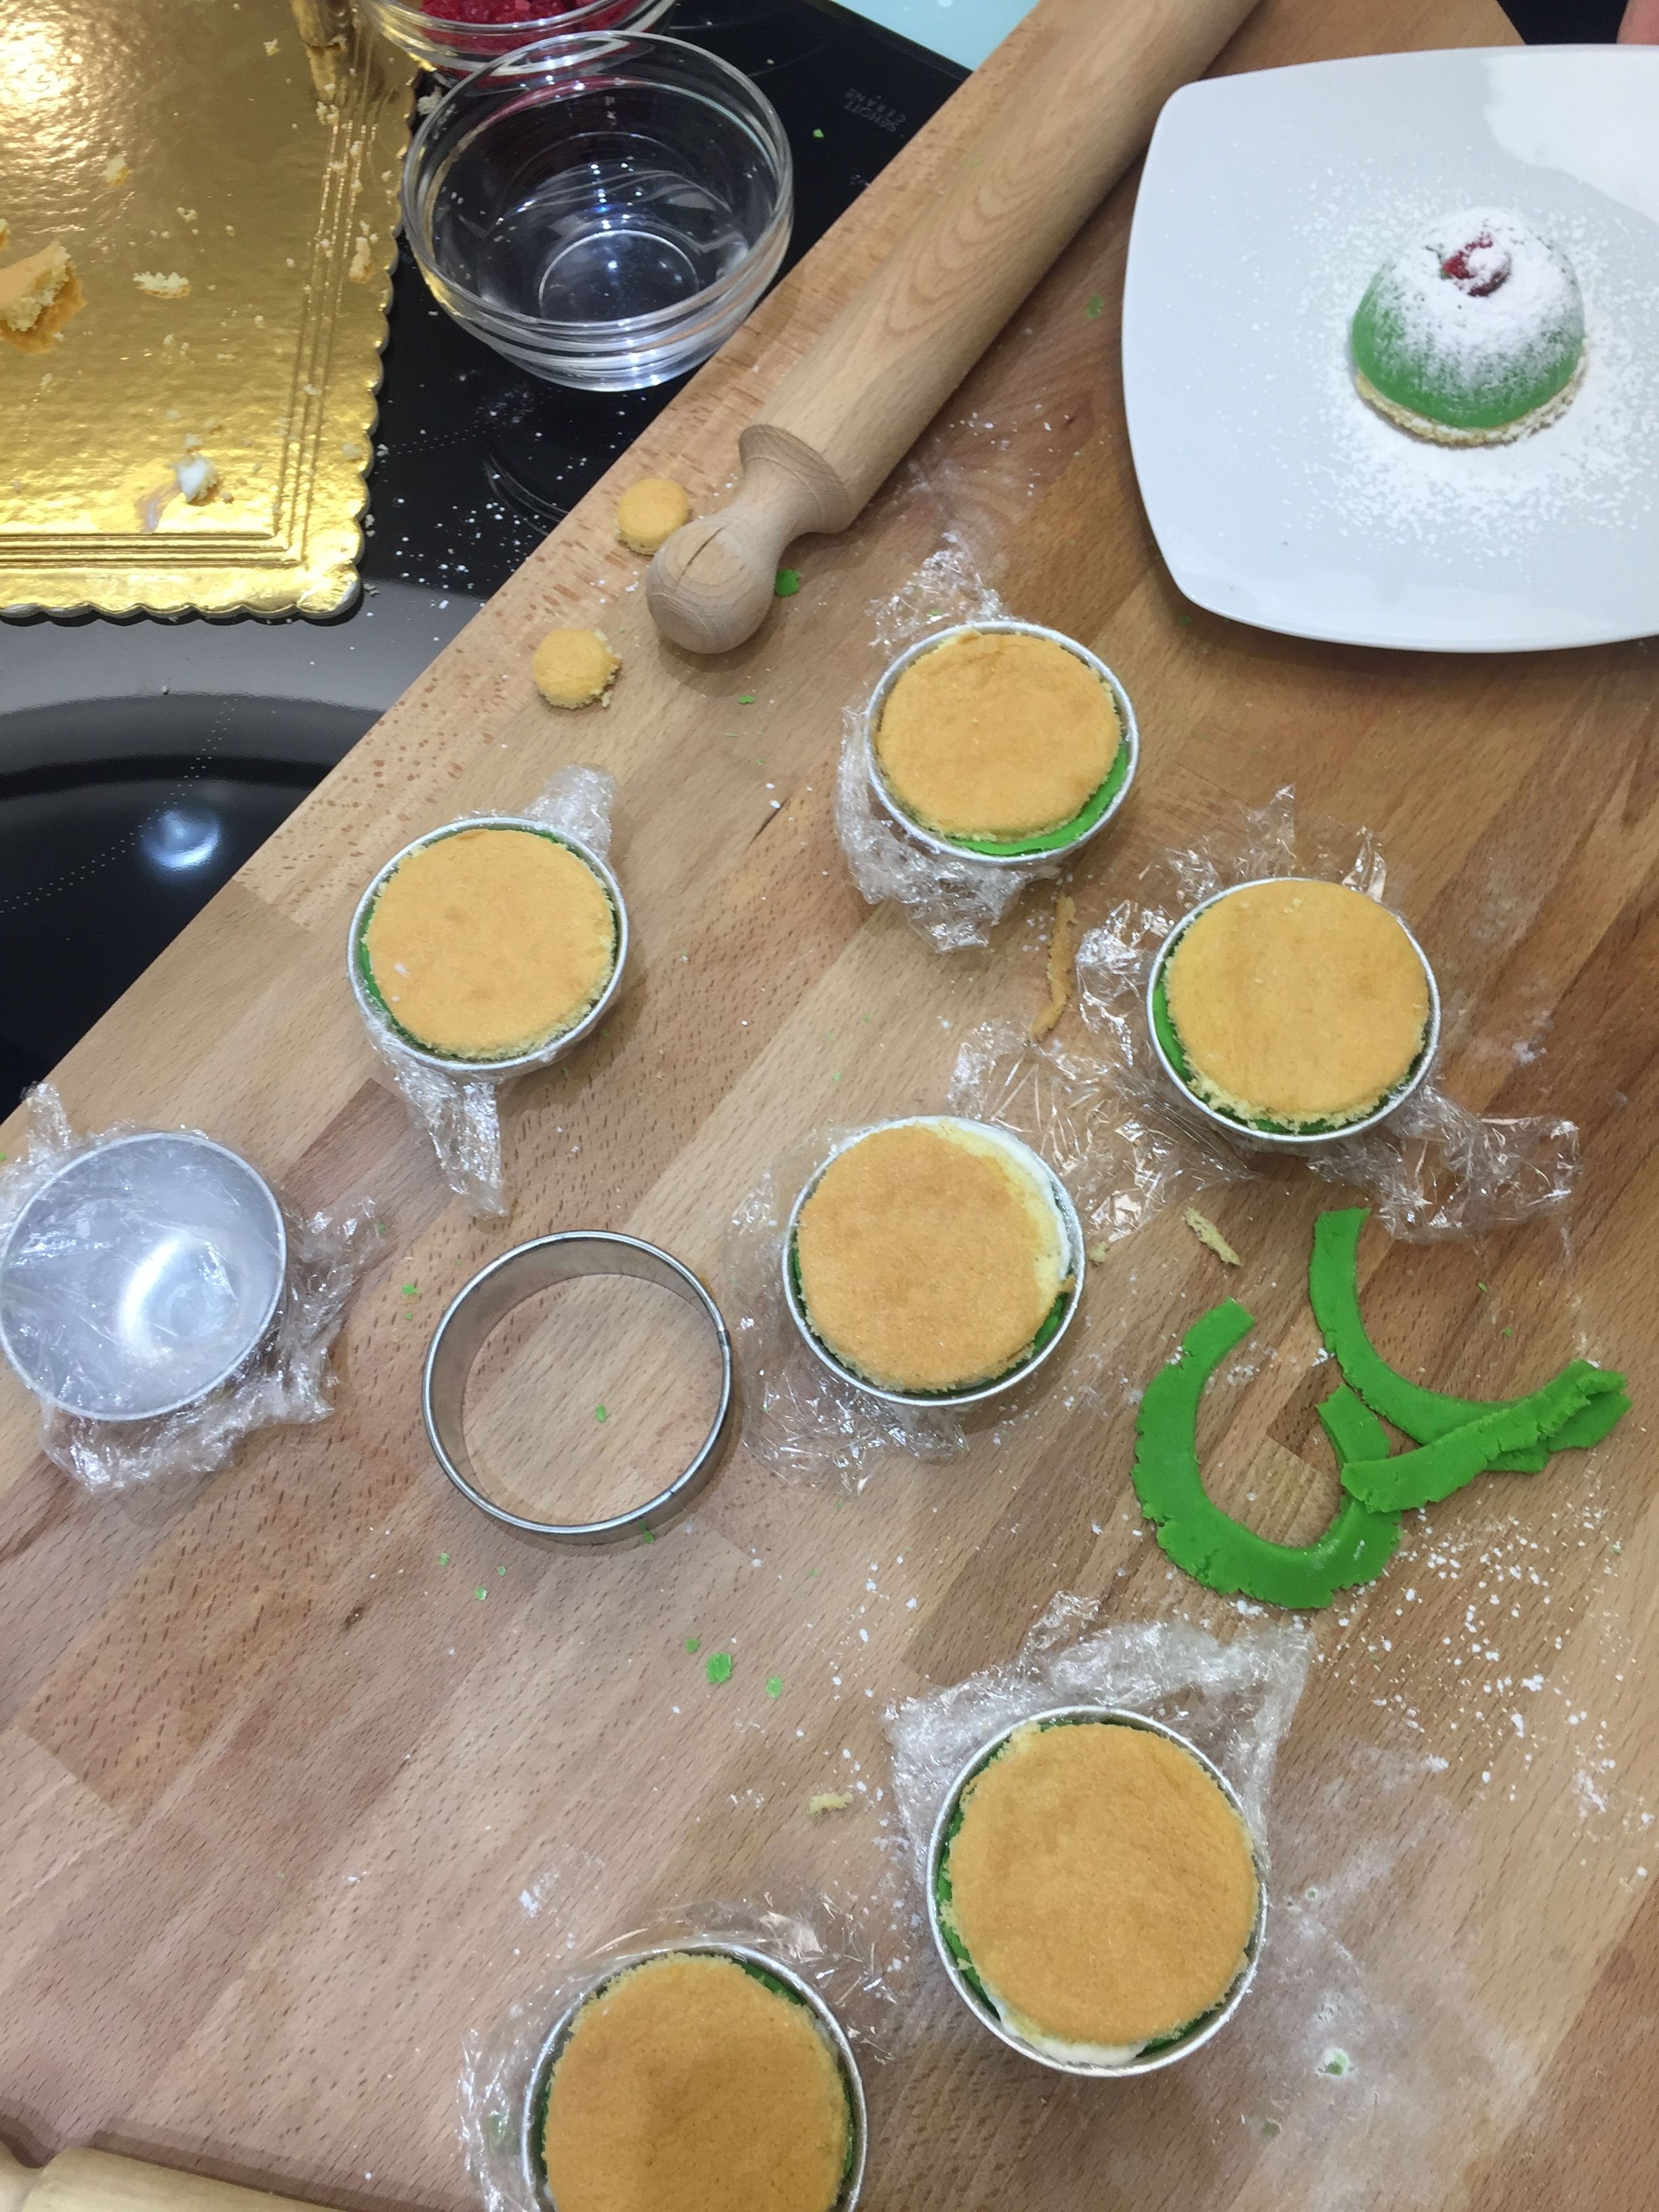 The traditional  Minni di Sant'Agata  desserts or in Sicilian dialect  Minnuzzi ri Sant'Ajita.  We made them ourselves during an in home cooking class with a local chef. PICTURE BY TRAVEL ITALIAN STYLE